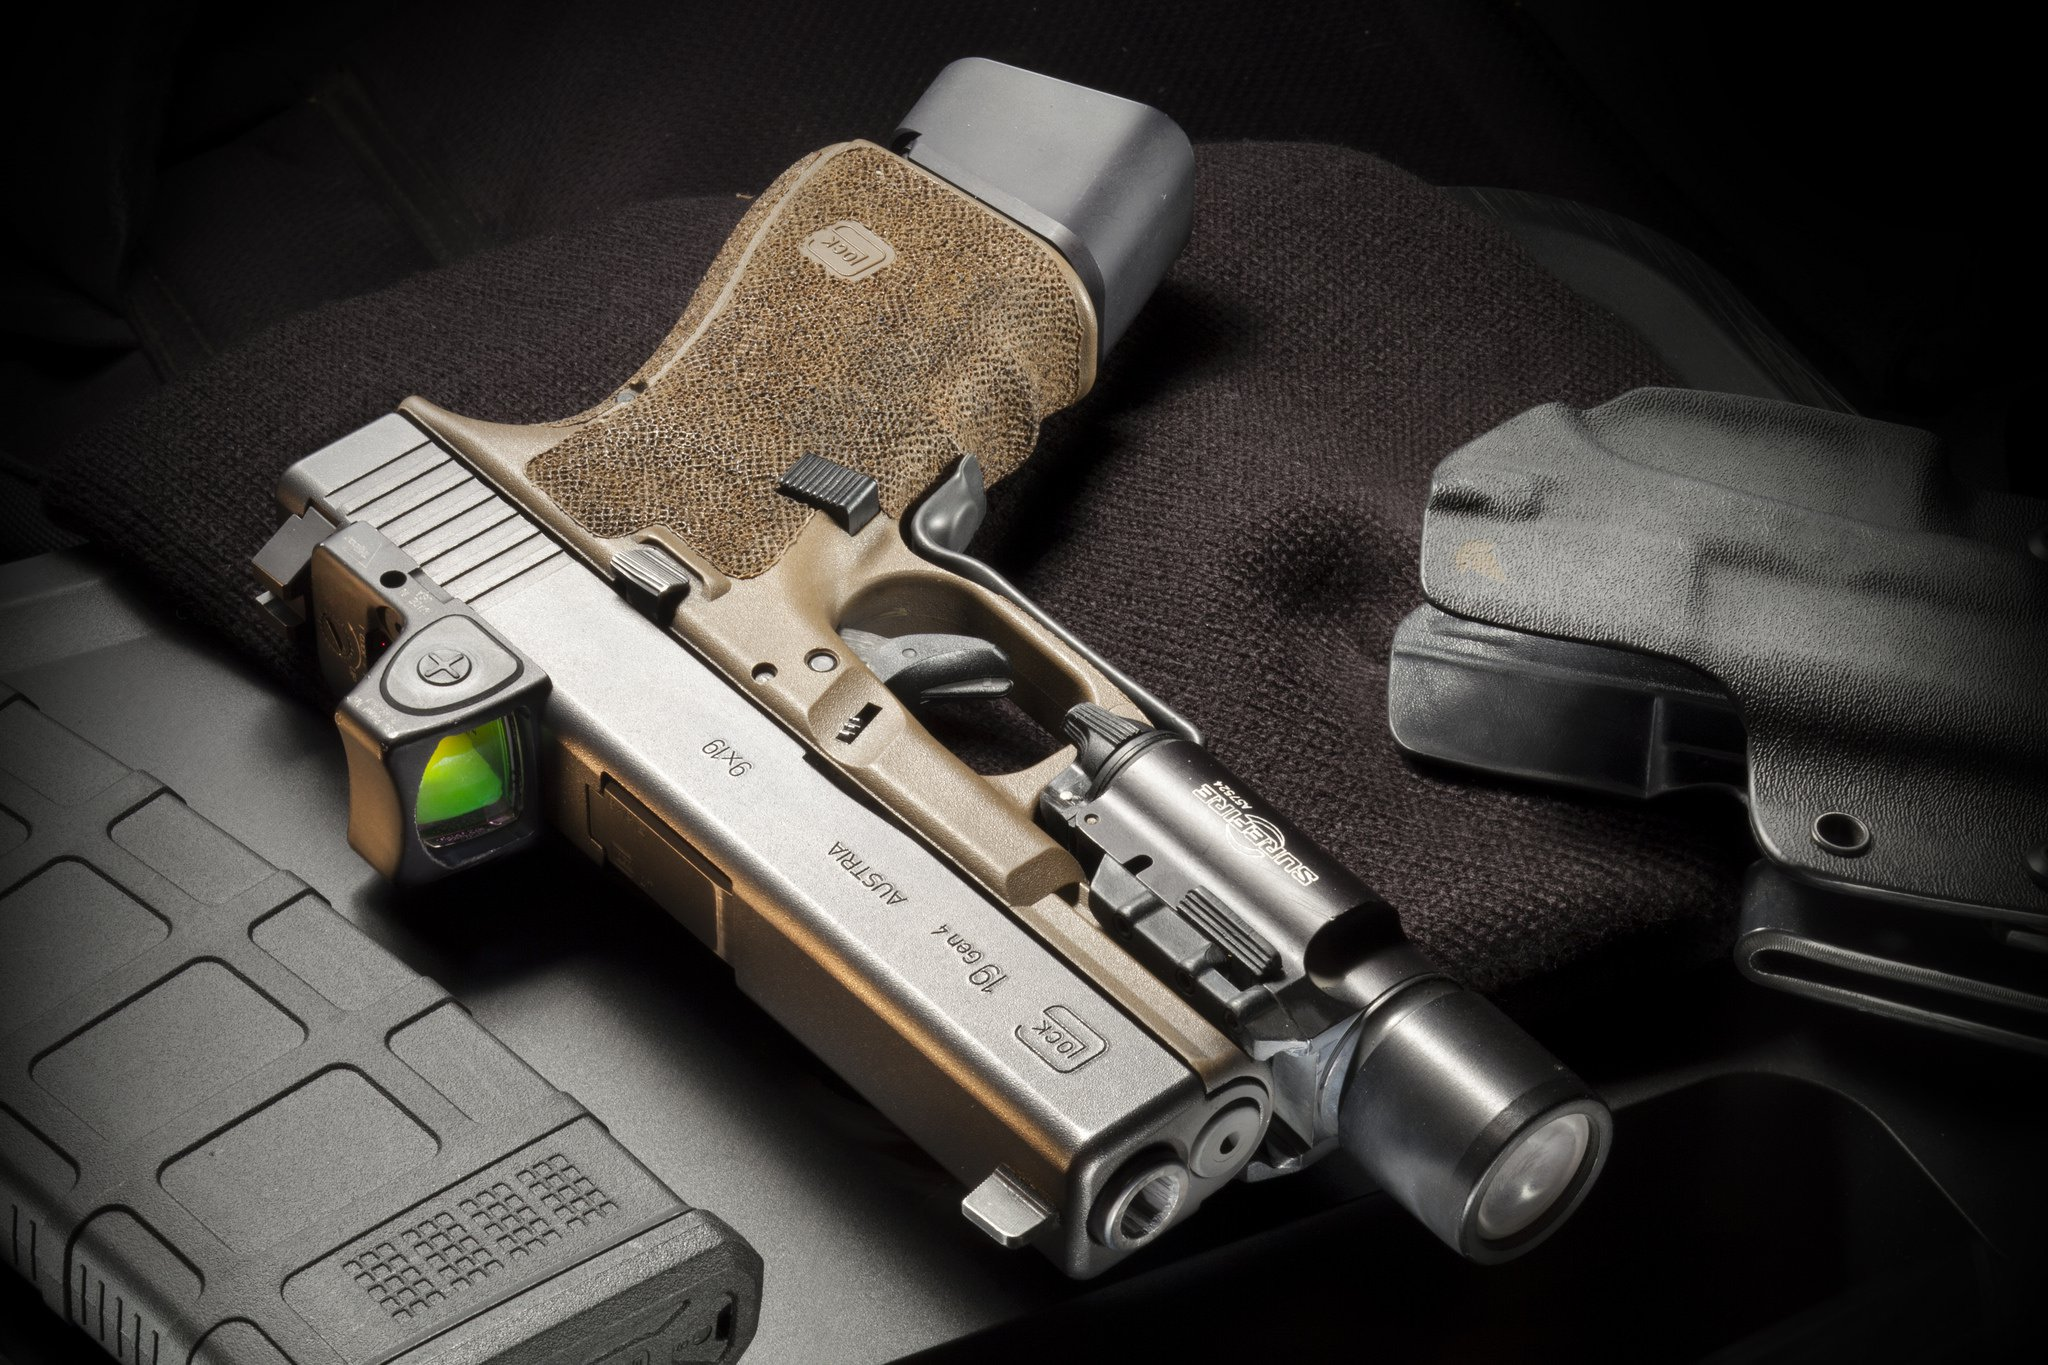 Glock 19 Gen4 Full HD Wallpaper And Background Image